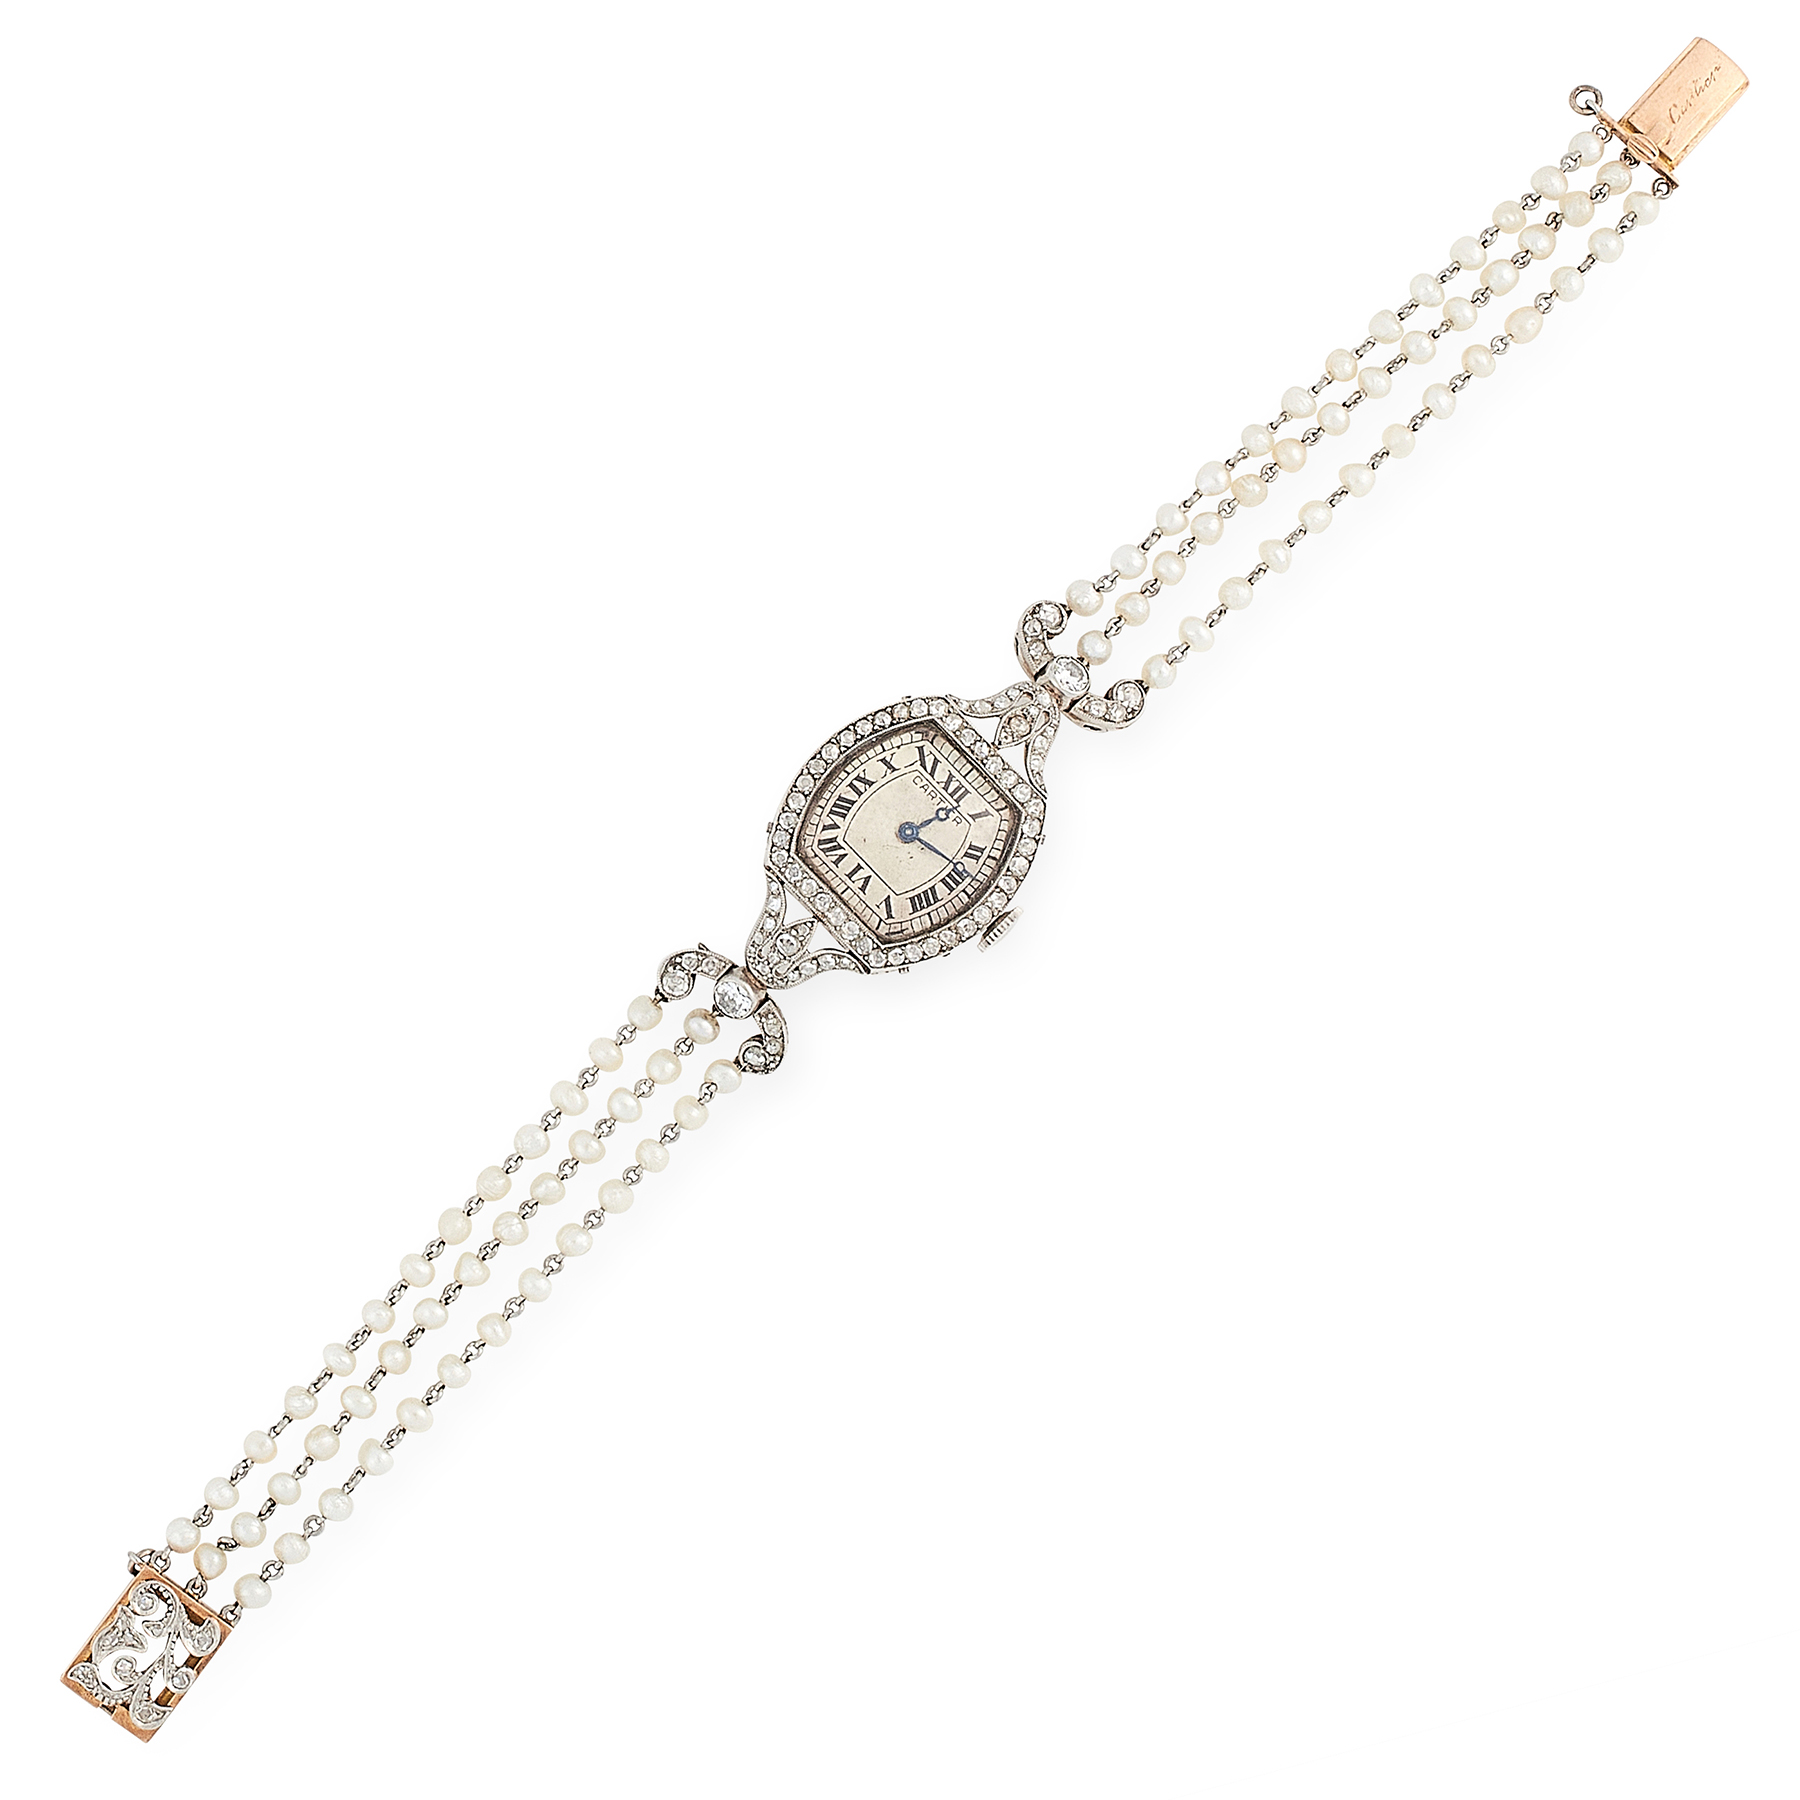 AN ANTIQUE DIAMOND AND PEARL WRIST WATCH, CARTIER EARLY 20TH CENTURY in 18ct yellow gold and